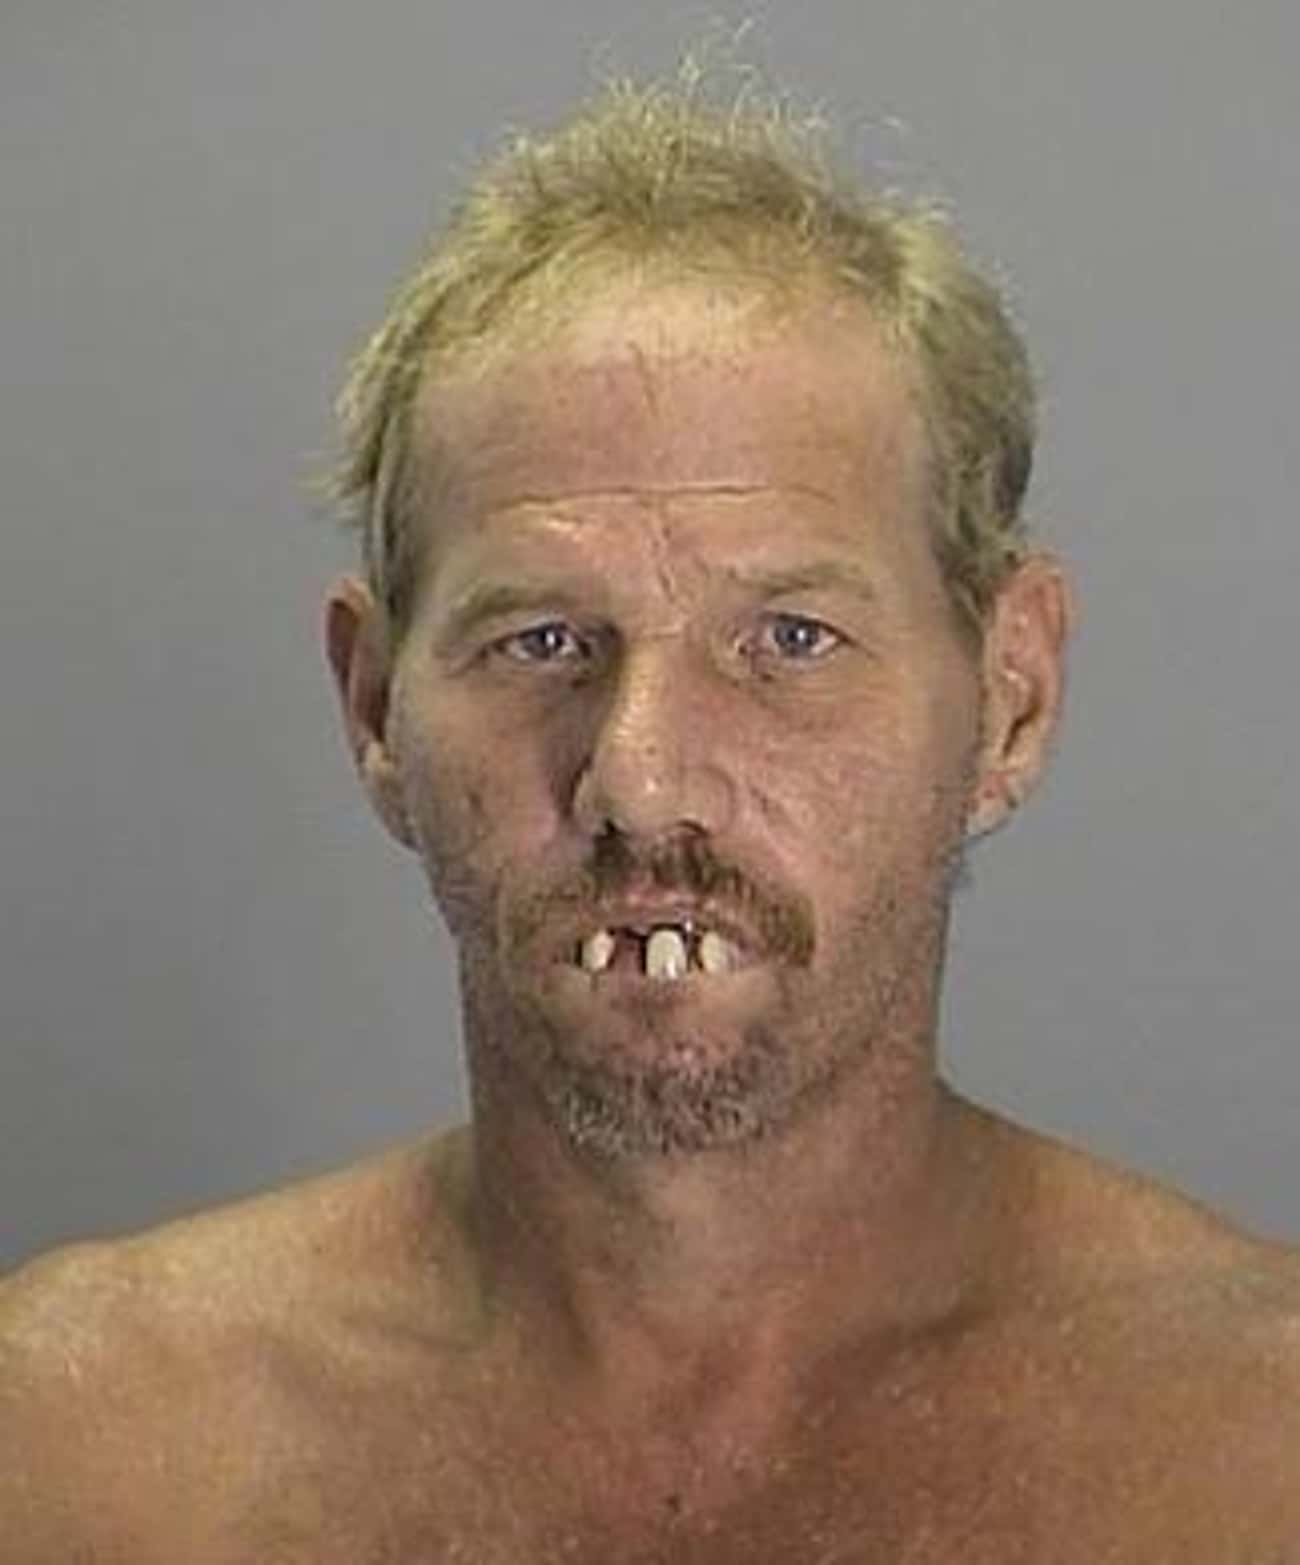 Snaggletooth is listed (or ranked) 1 on the list 28 Hilarious Florida Mugshots